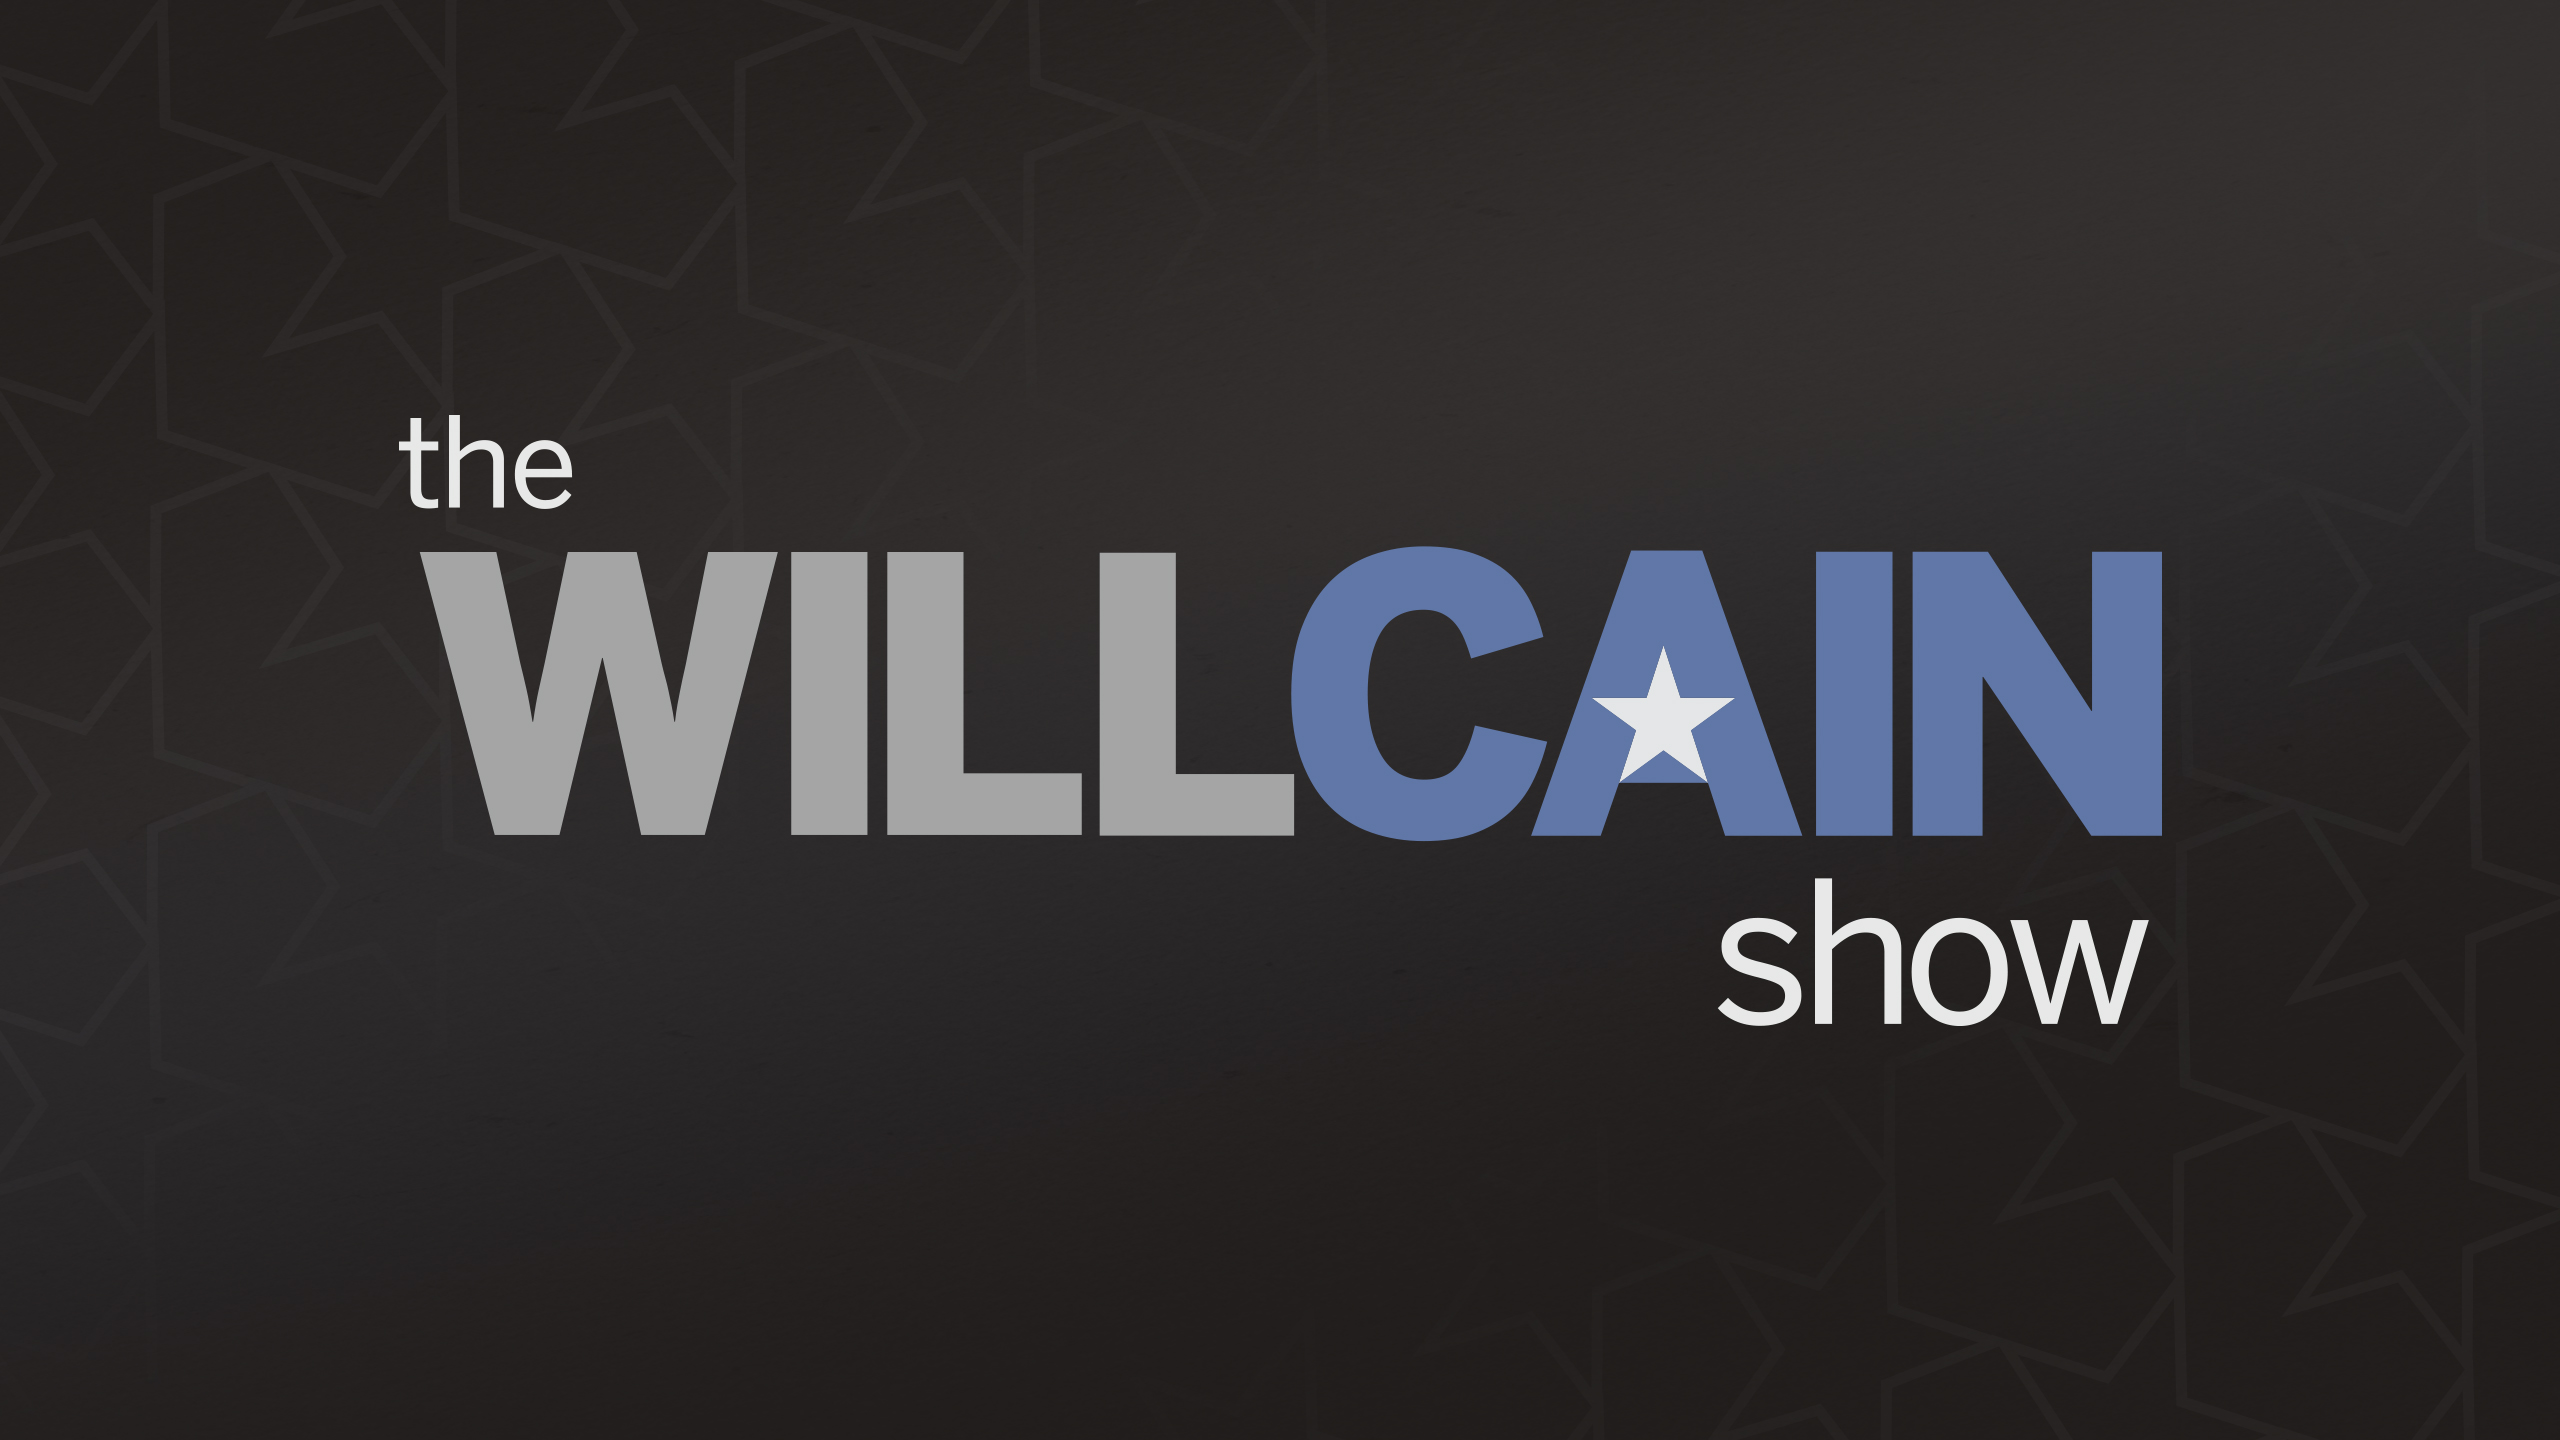 Mon, 10/22 - The Will Cain Show